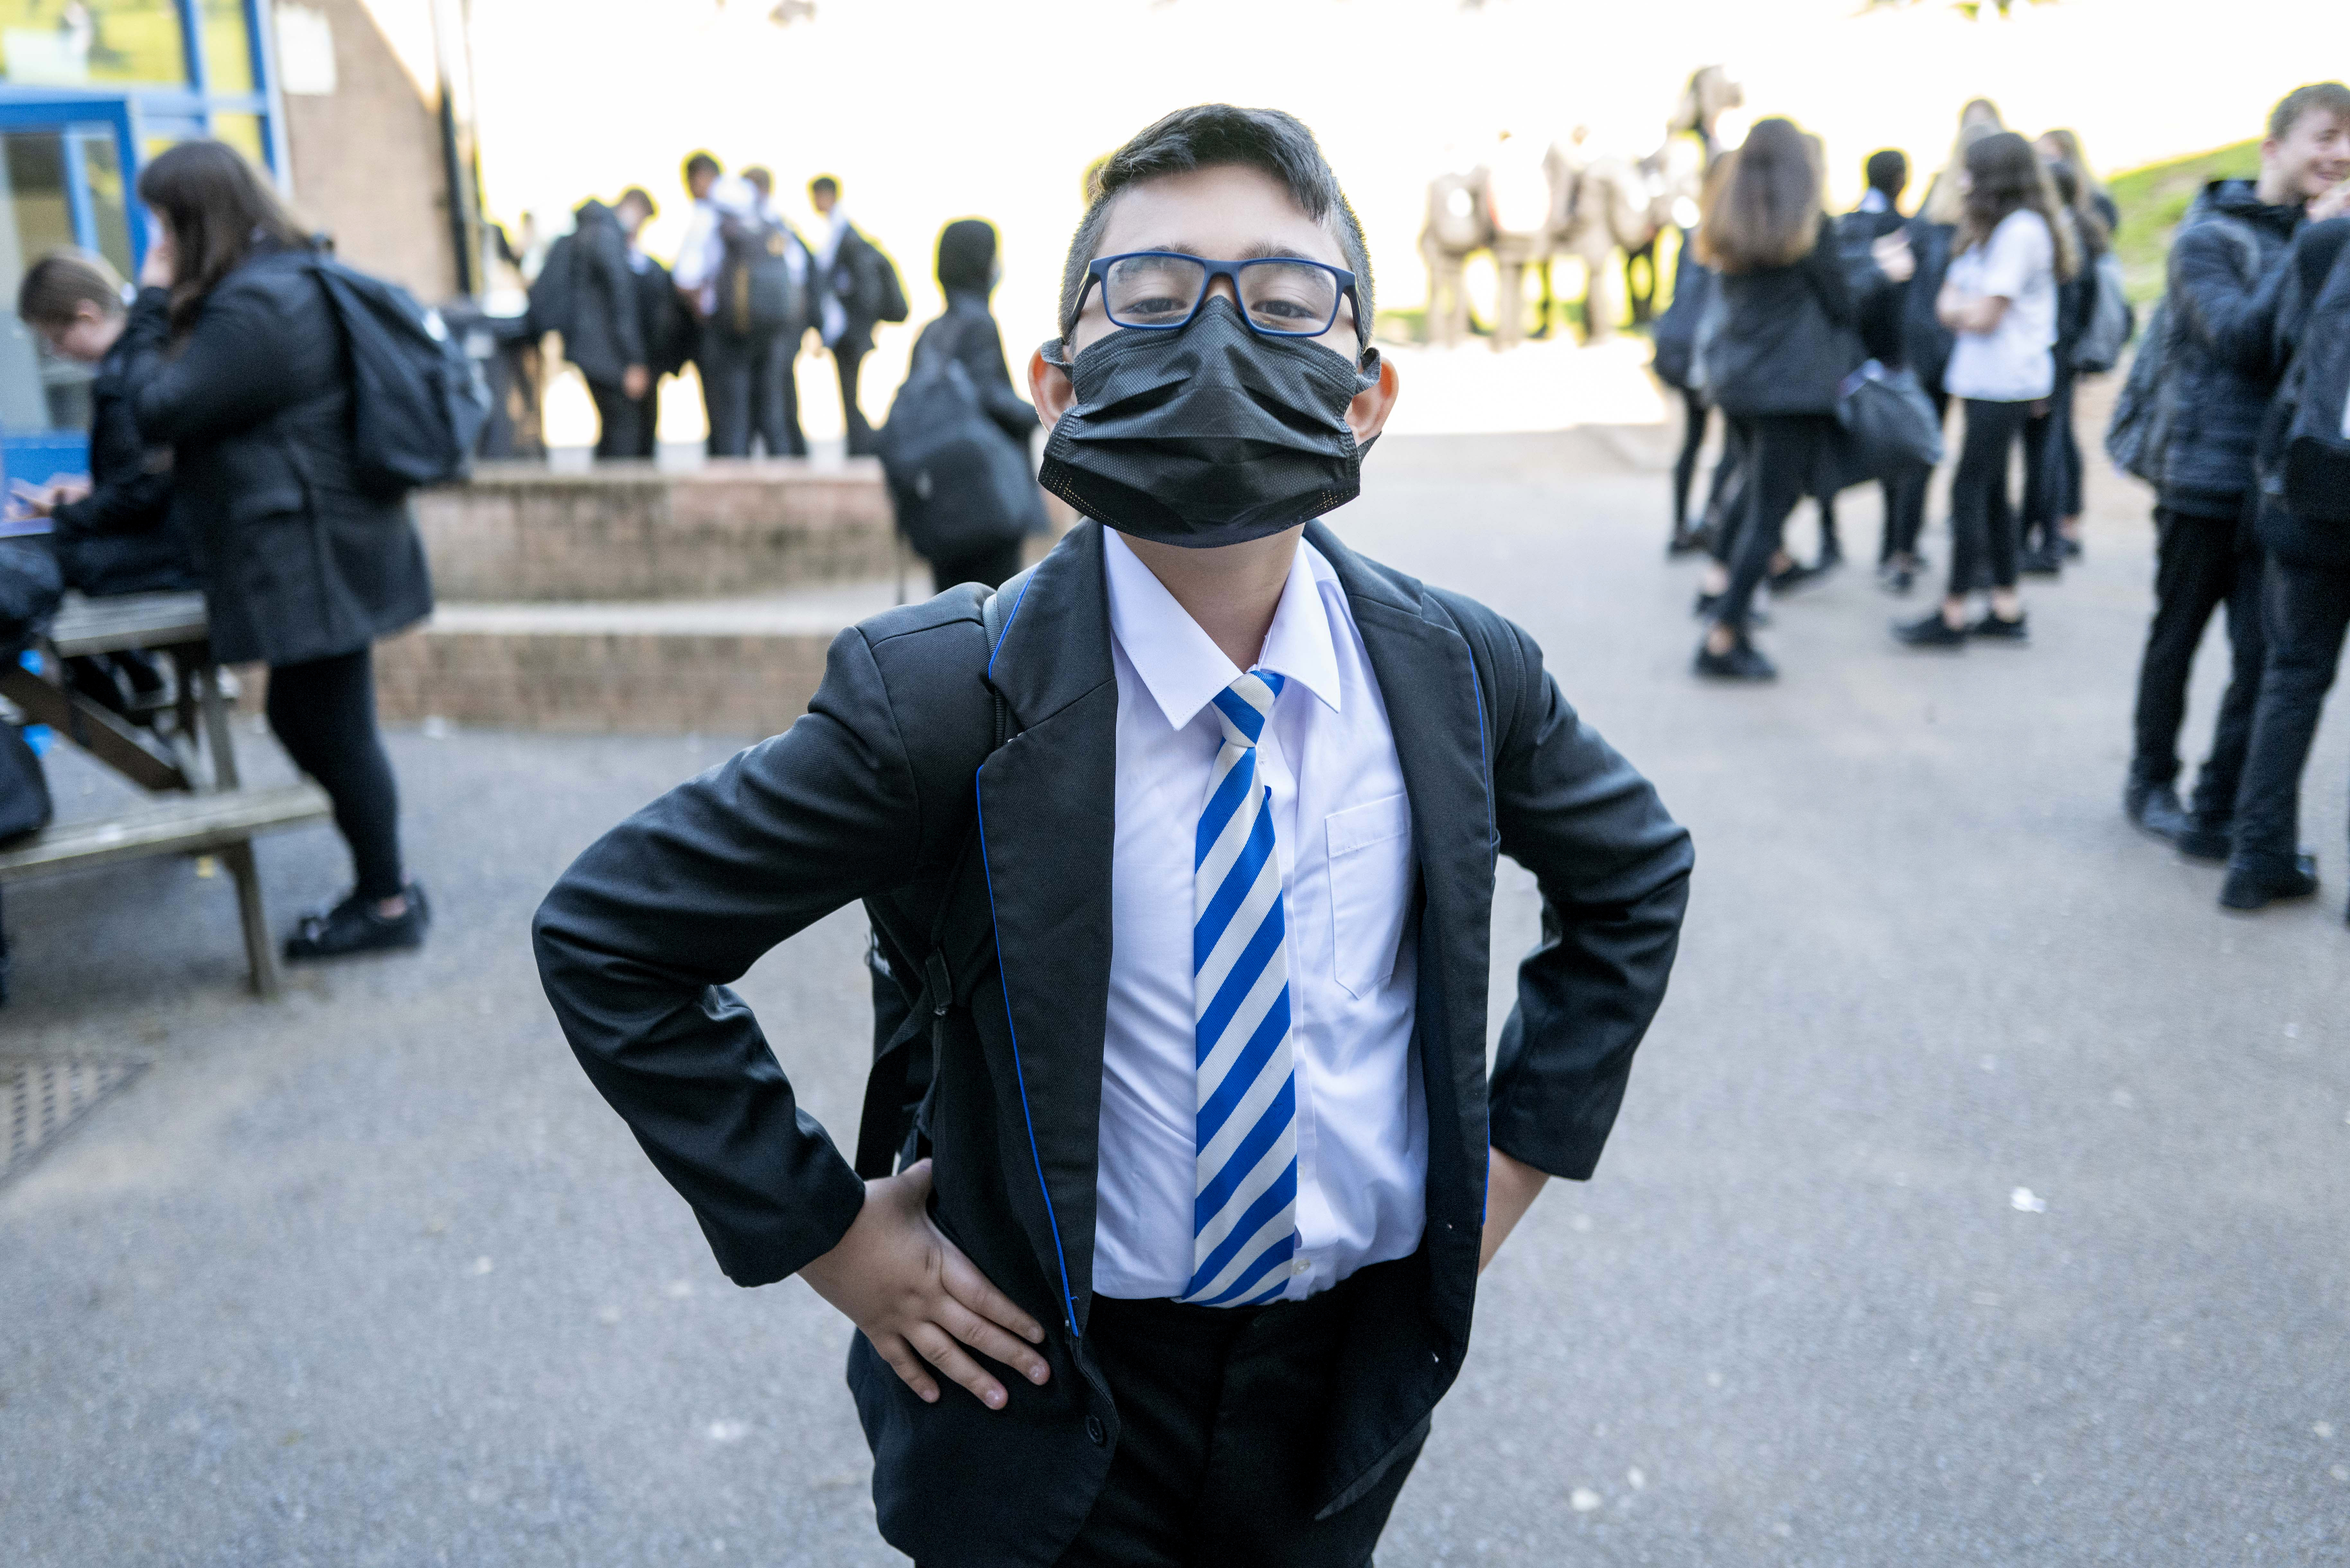 <p>CARDIFF, WALES - SEPTEMBER 20: A child wearing a face mask poses for a photograph at Llanishen High School on September 20, 2021 in Cardiff, Wales. All children aged 12 to 15 across the UK will be offered a dose of the Pfizer-BioNTech Covid-19 vaccine. Parental consent will be sought for the schools-based vaccination programme. (Photo by Matthew Horwood/Getty Images)</p>